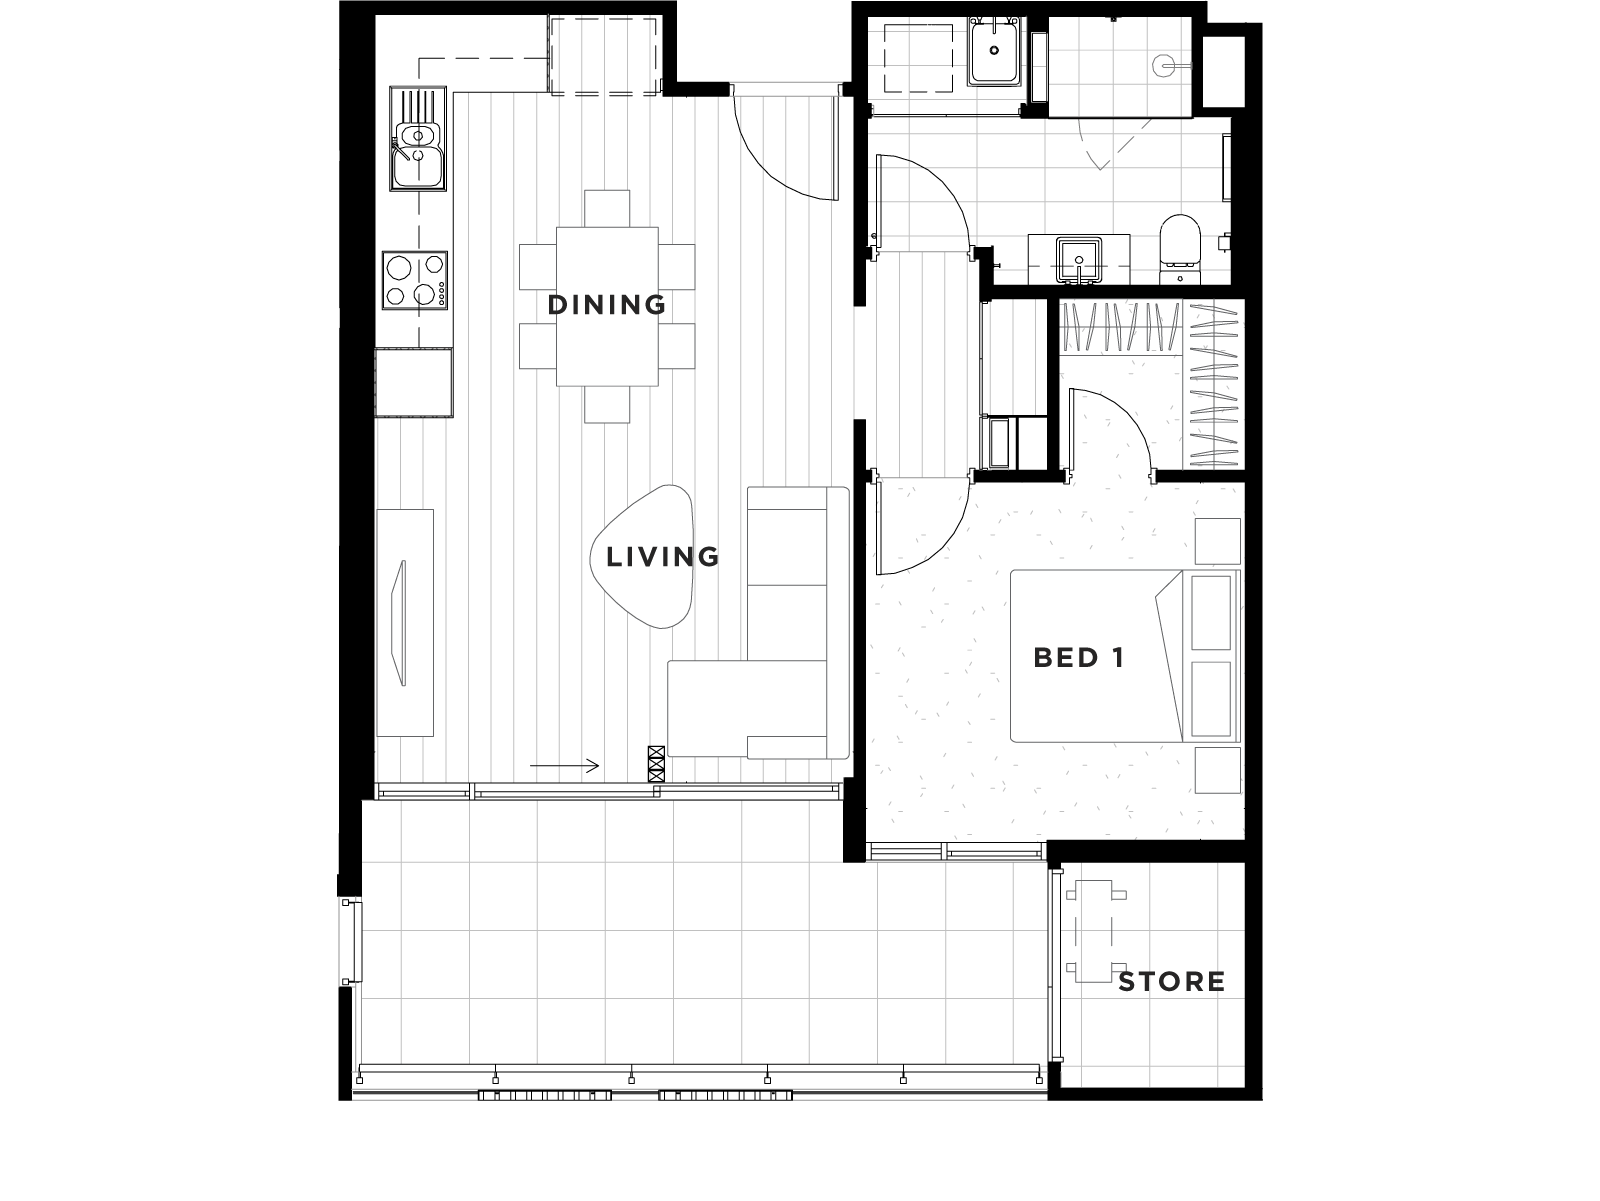 Apartment 29 Floorplan